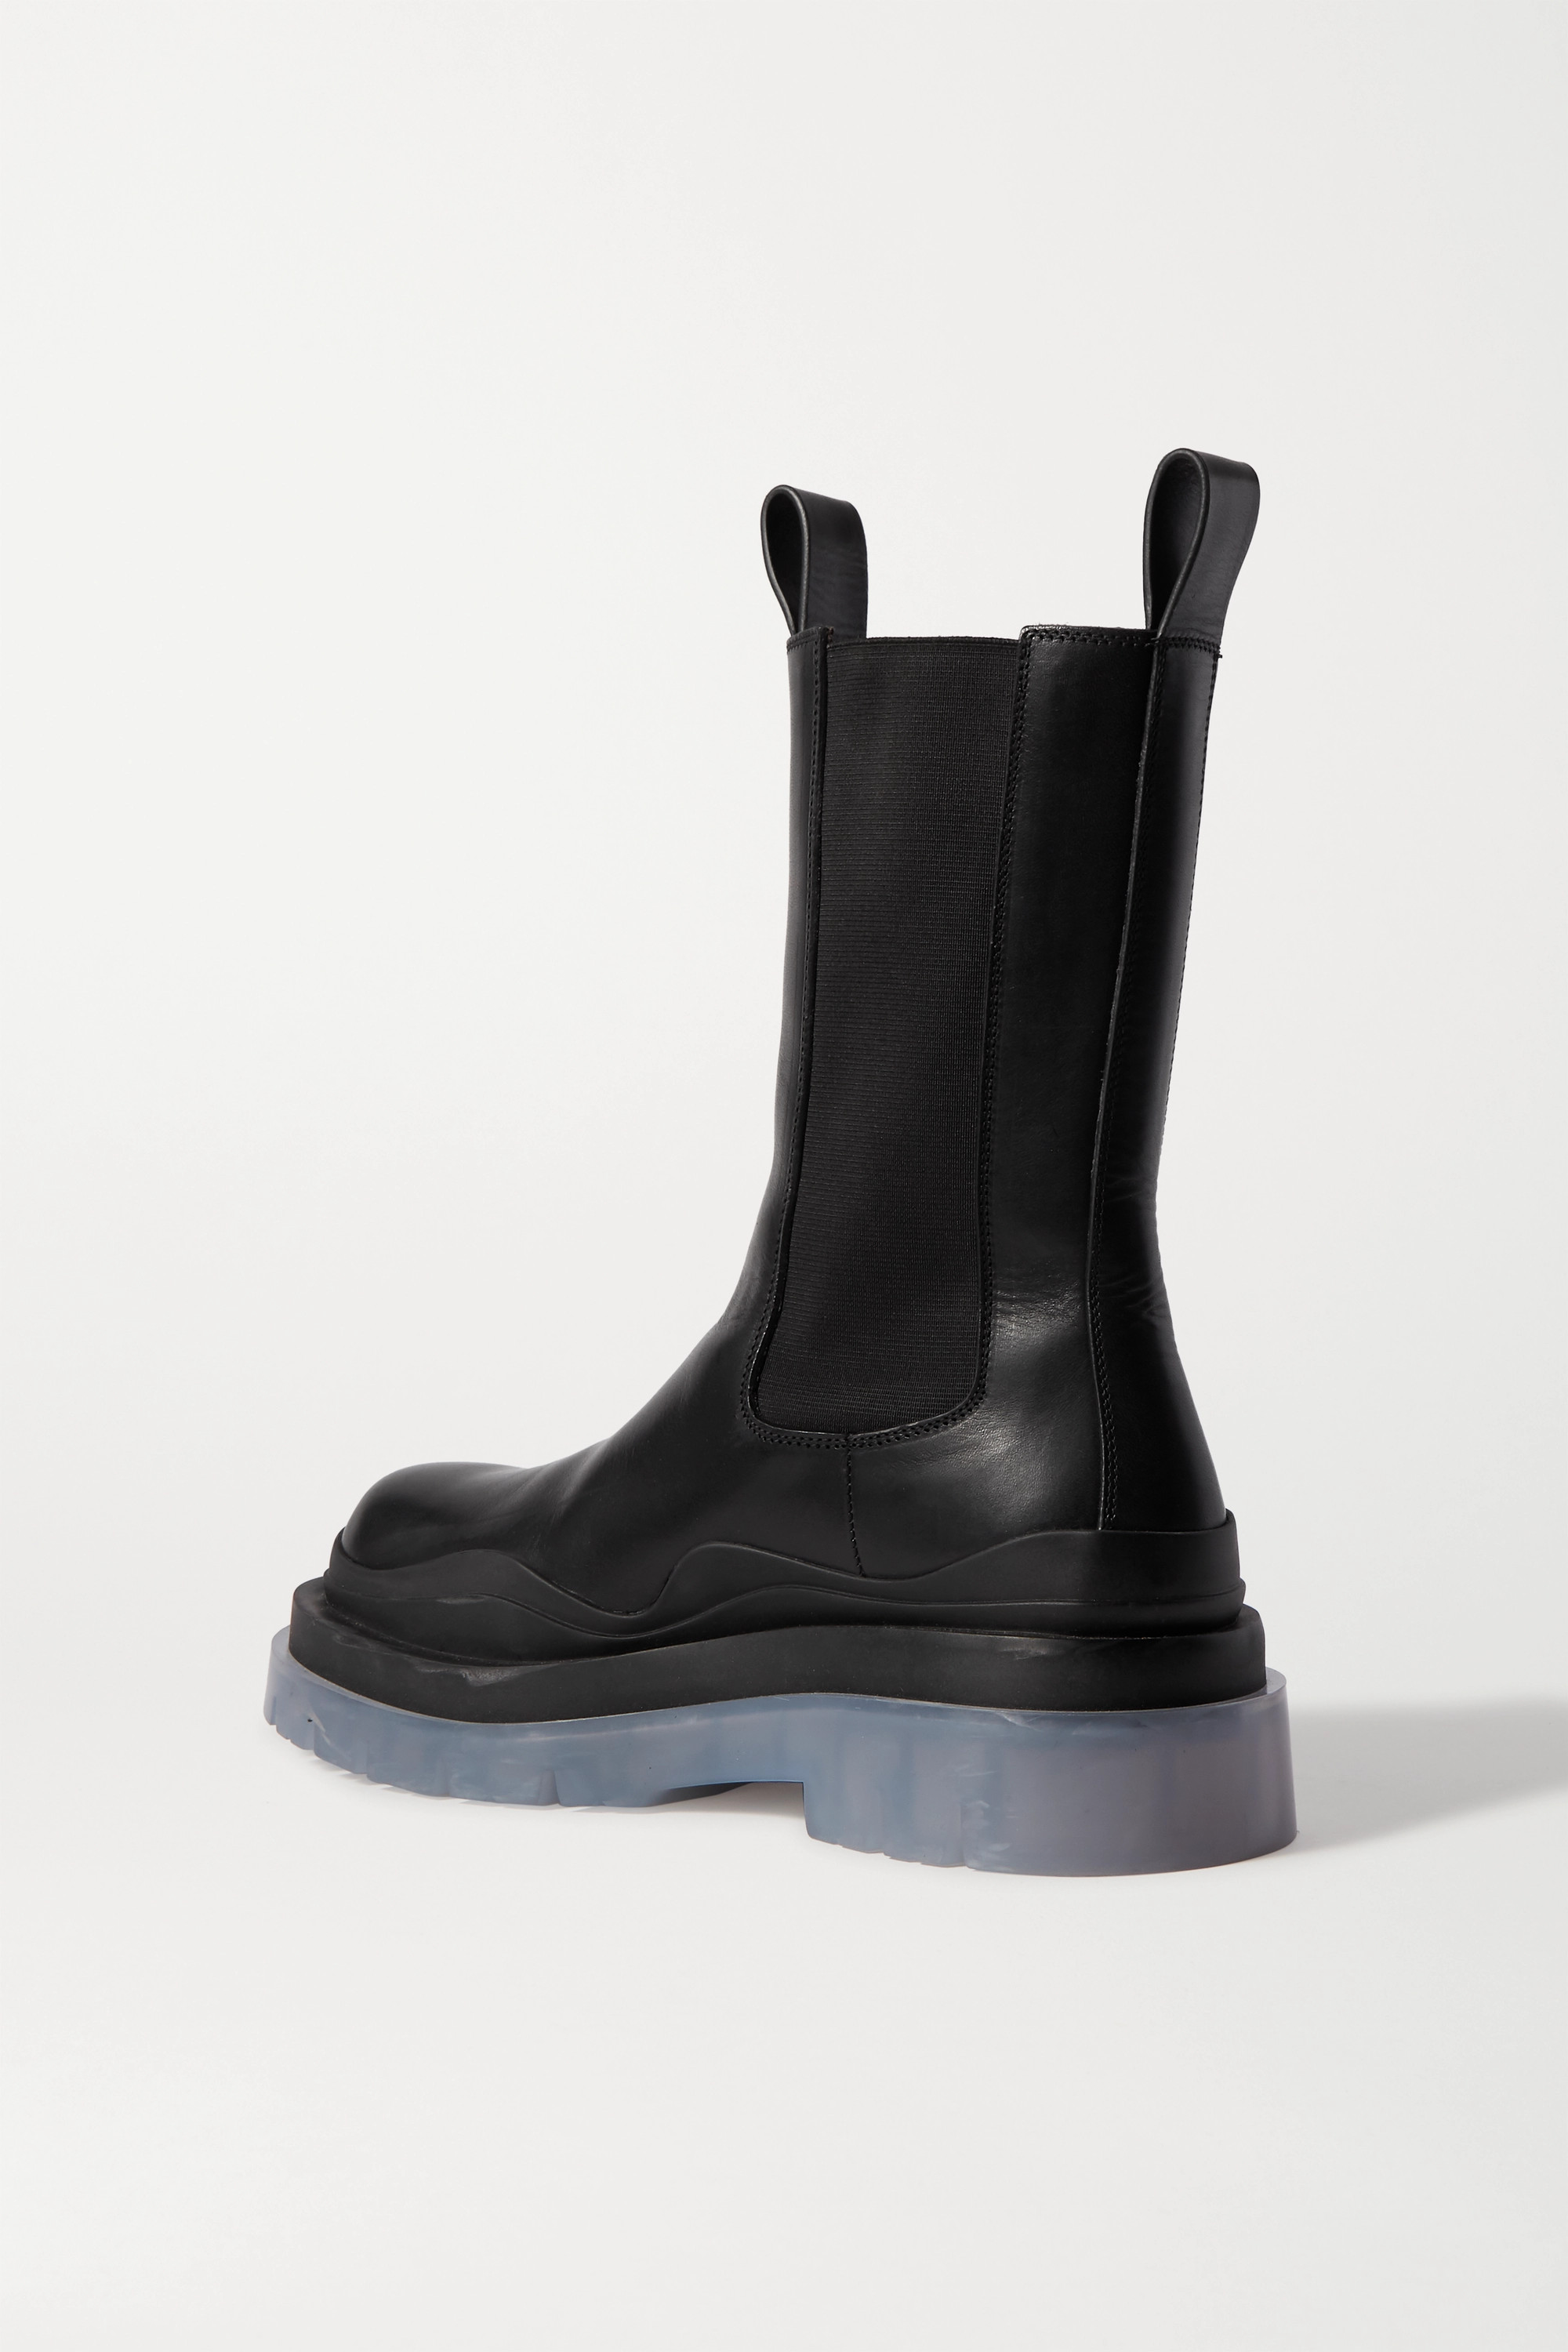 Bottega Veneta Rubber-trimmed leather Chelsea boots